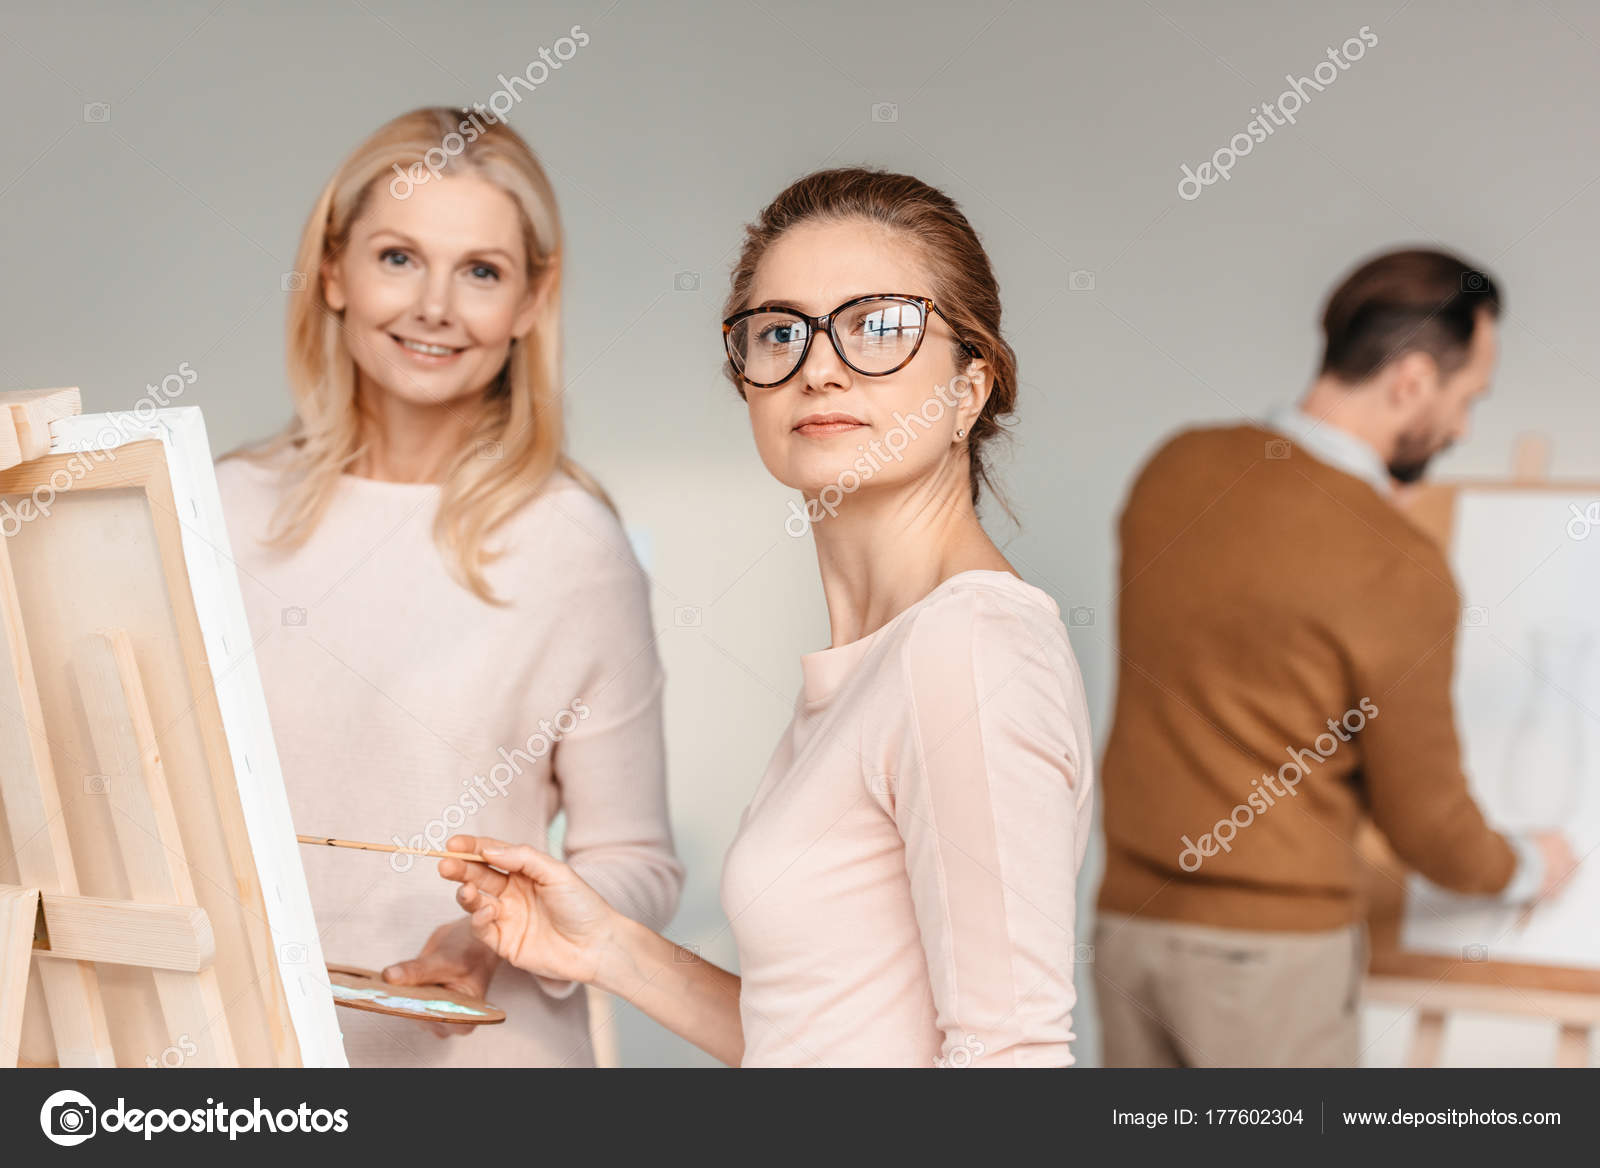 You incorrect Women posing for art classes